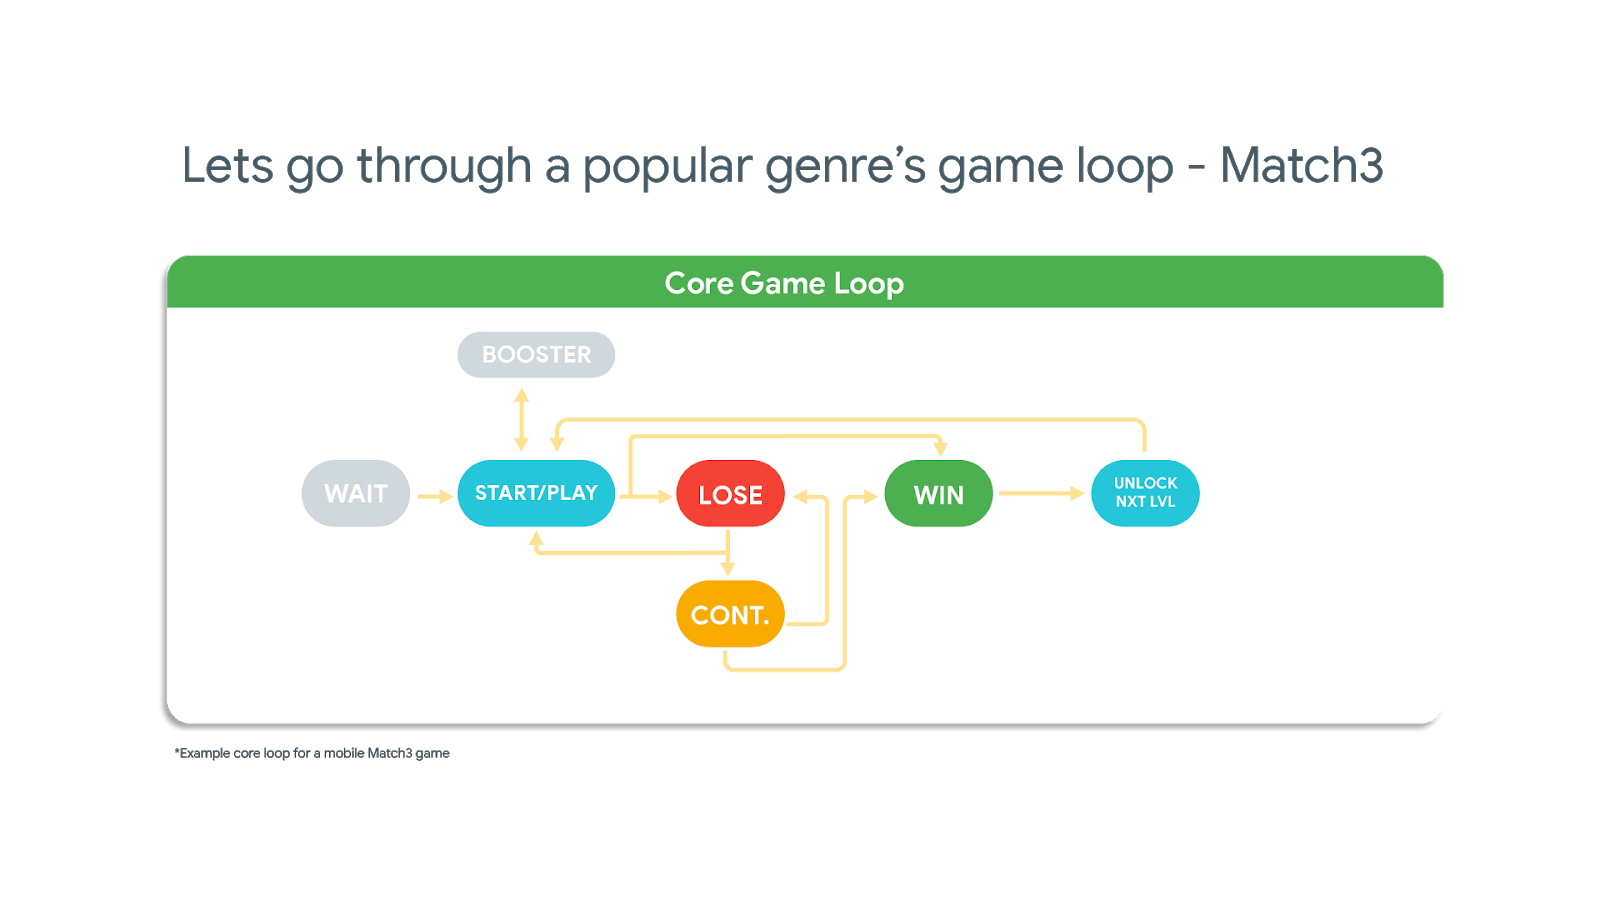 Bridging the Gap: Games approaches to engagement & monetization